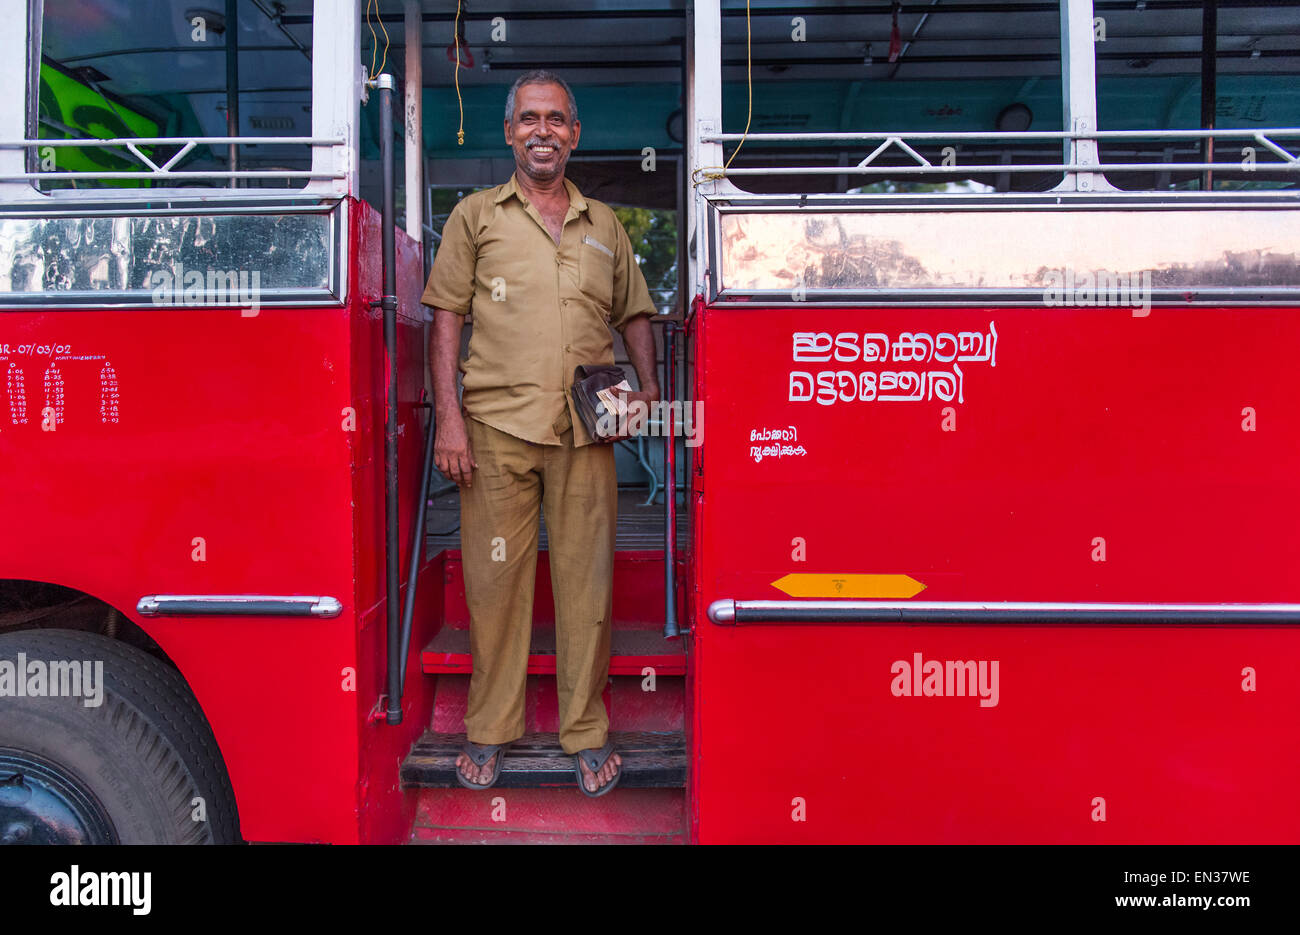 Bus driver in front of a red bus, Kerala, India - Stock Image